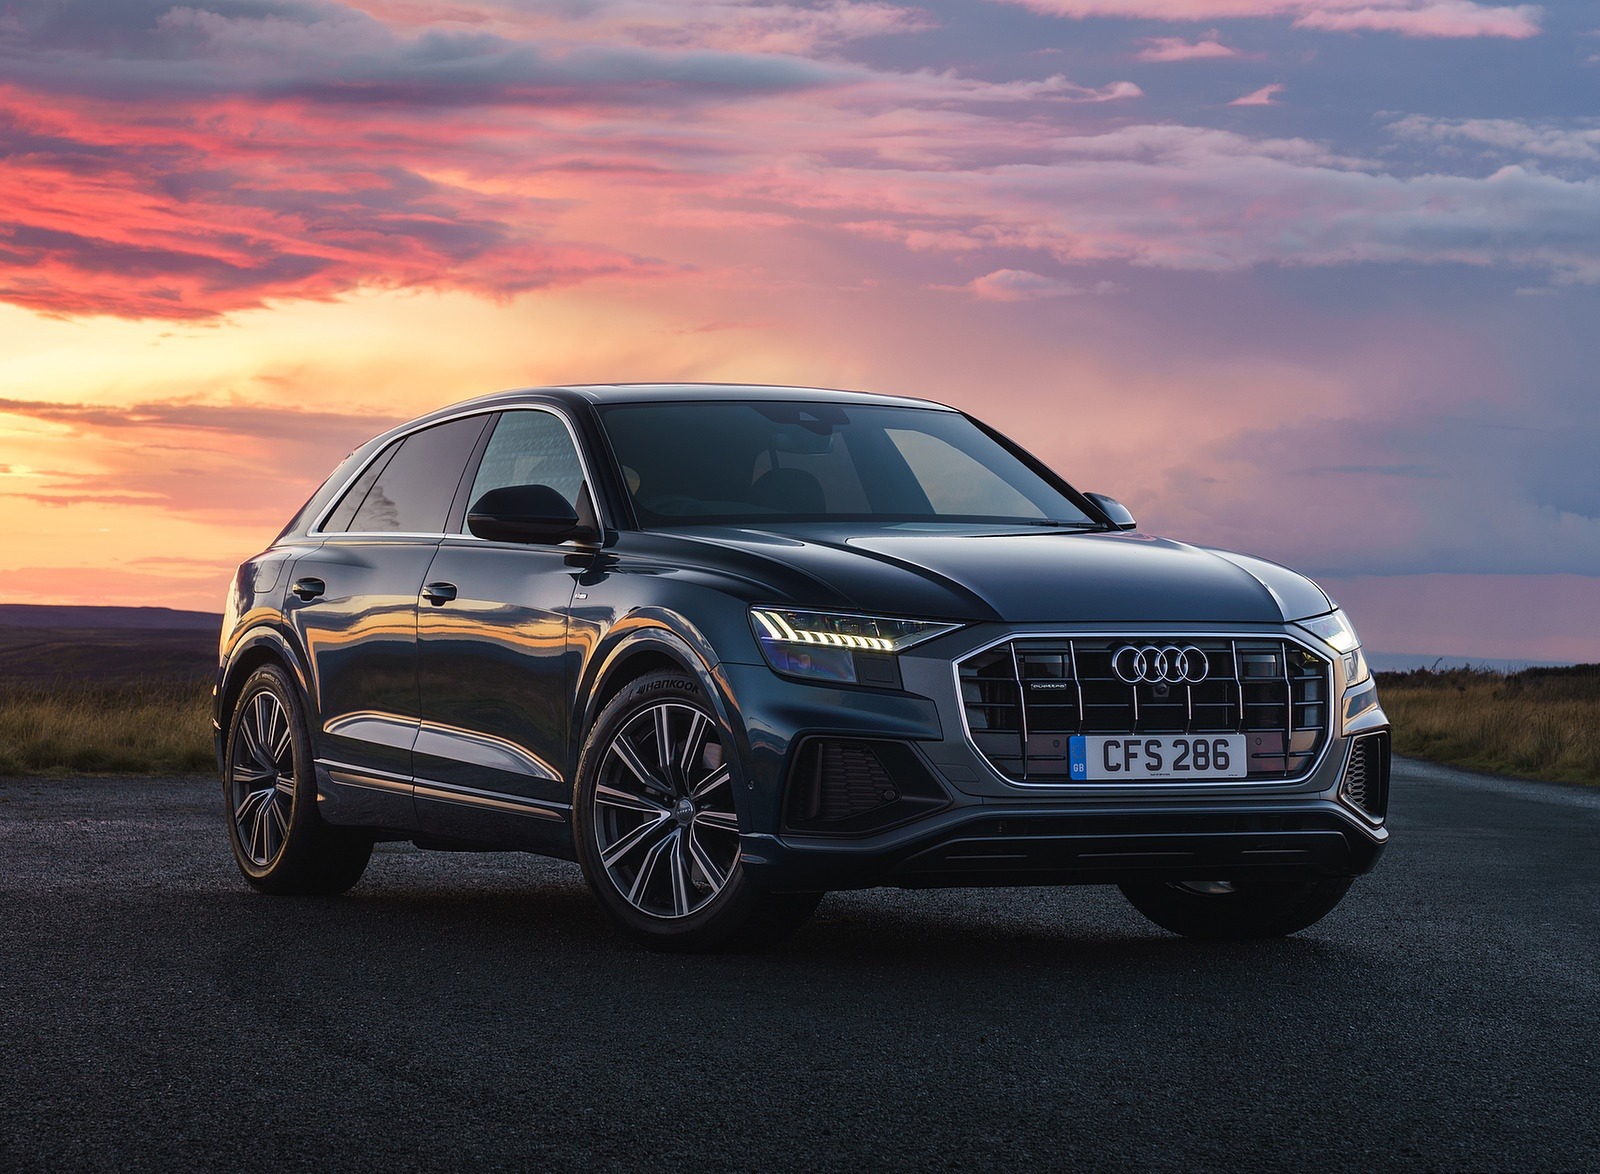 2019 Audi Q8 S Line 50 TDI Quattro (UK-Spec) Front Three-Quarter Wallpaper (11)